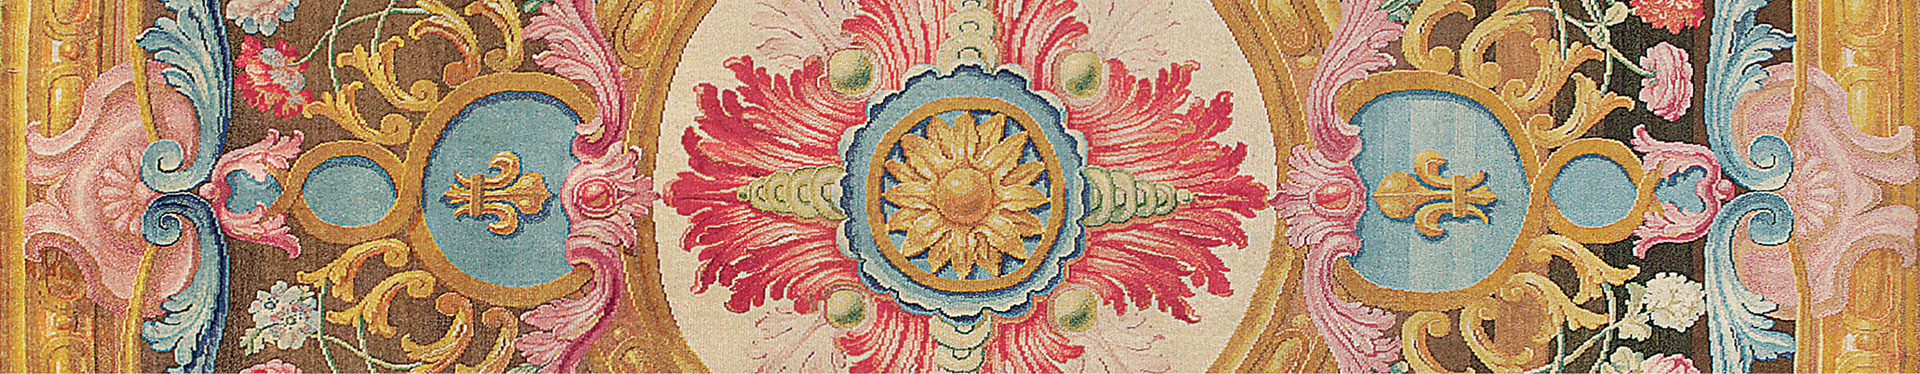 rugs-and-carpets-banner-FINAL_45_1_20170110104324.jpg